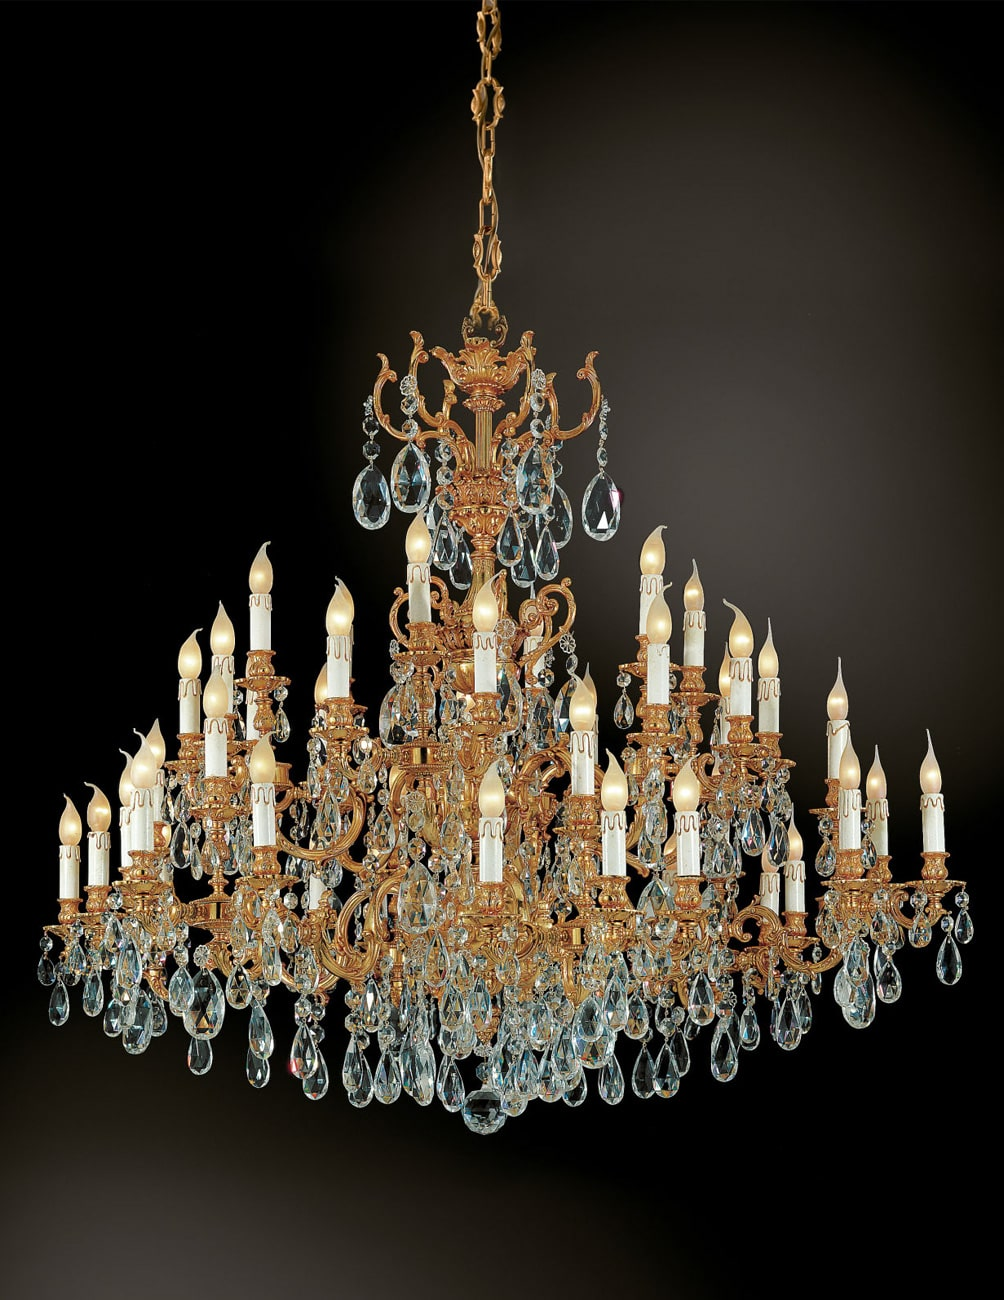 decorative lighting chandeliers 58